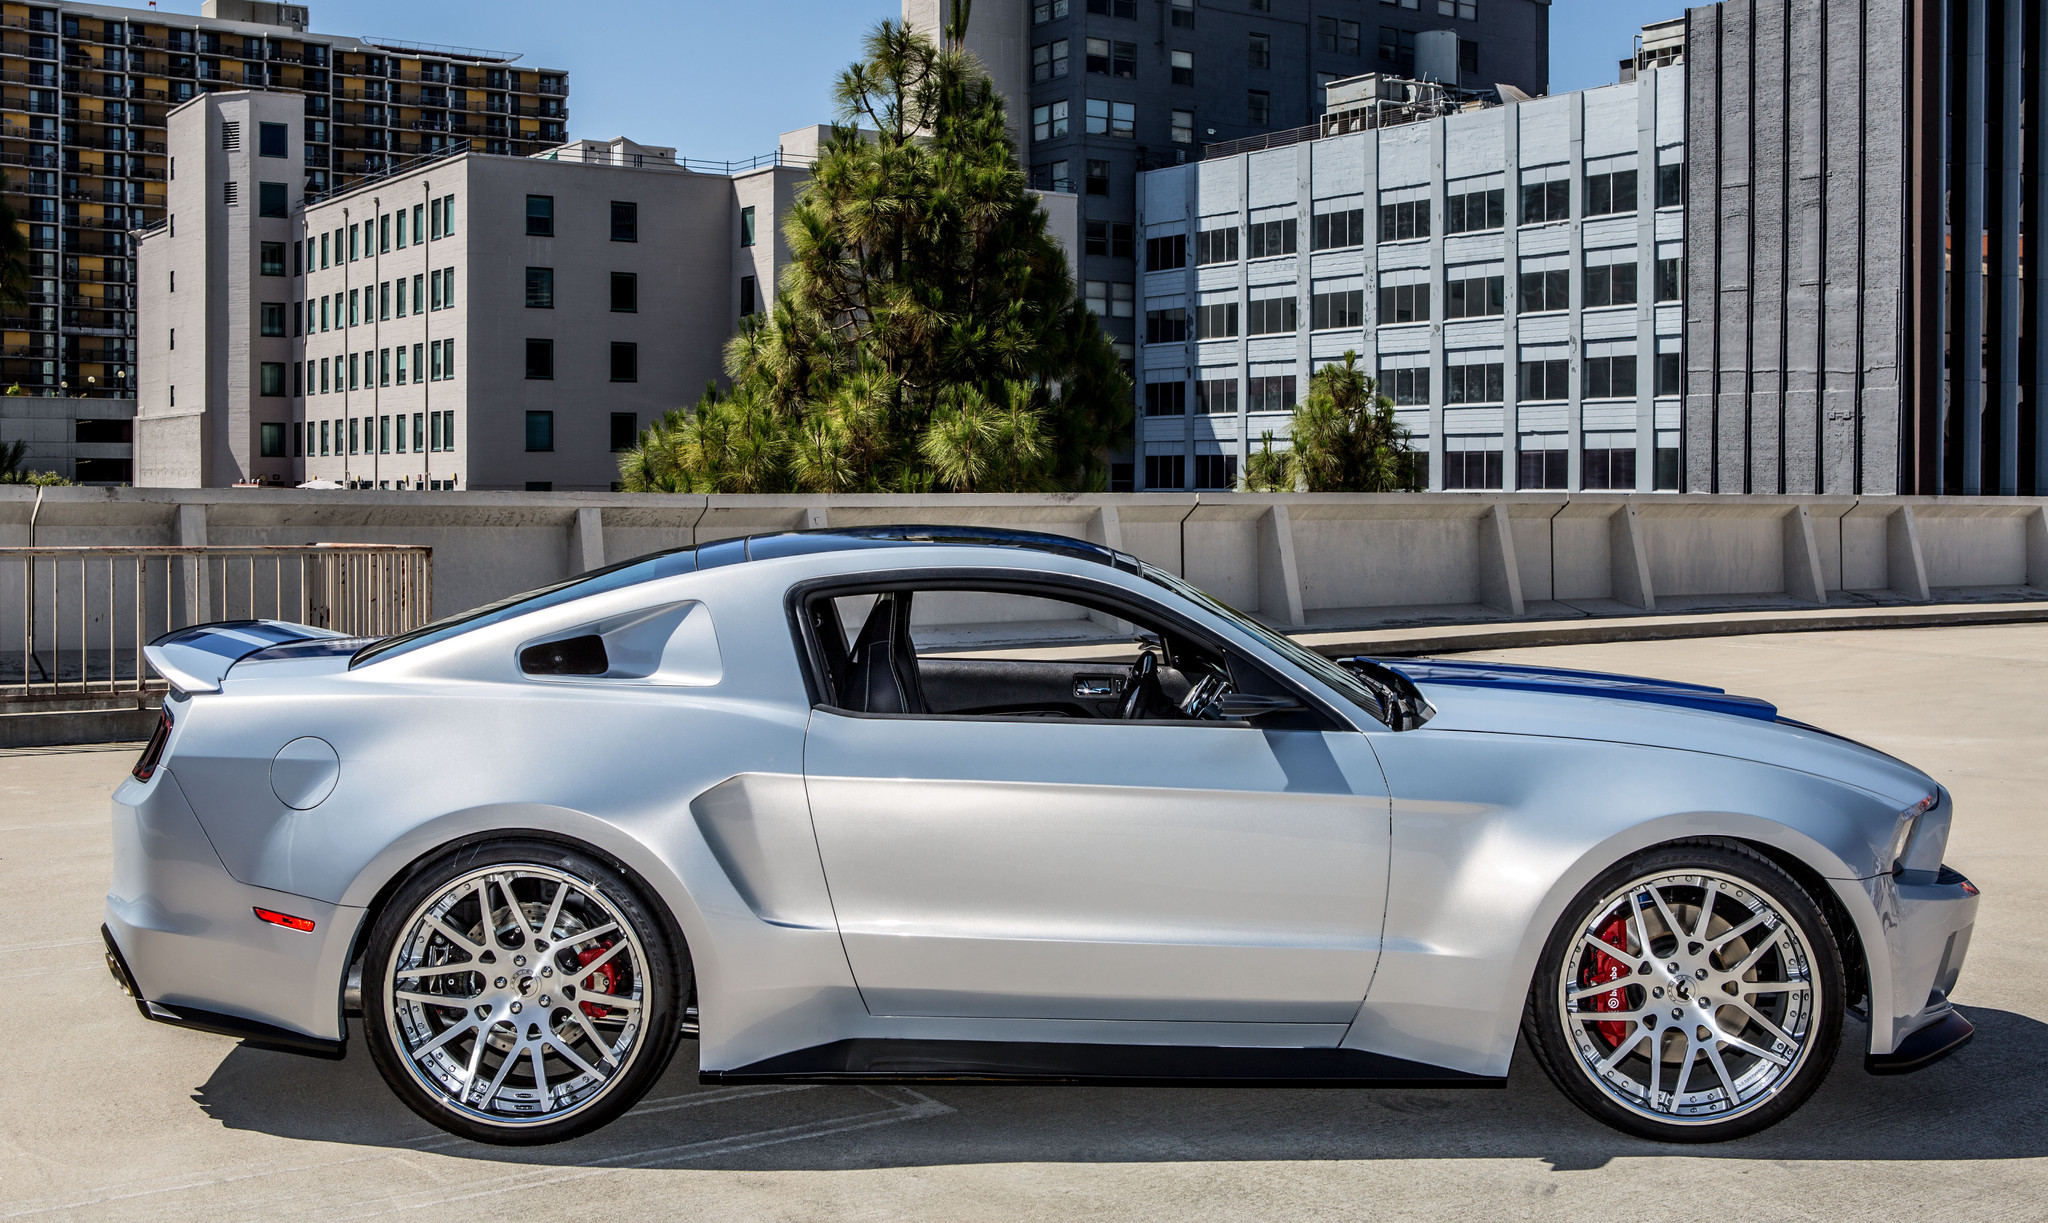 ford mustang need for speed movie 39 need for speed 39 ford mustang. Black Bedroom Furniture Sets. Home Design Ideas